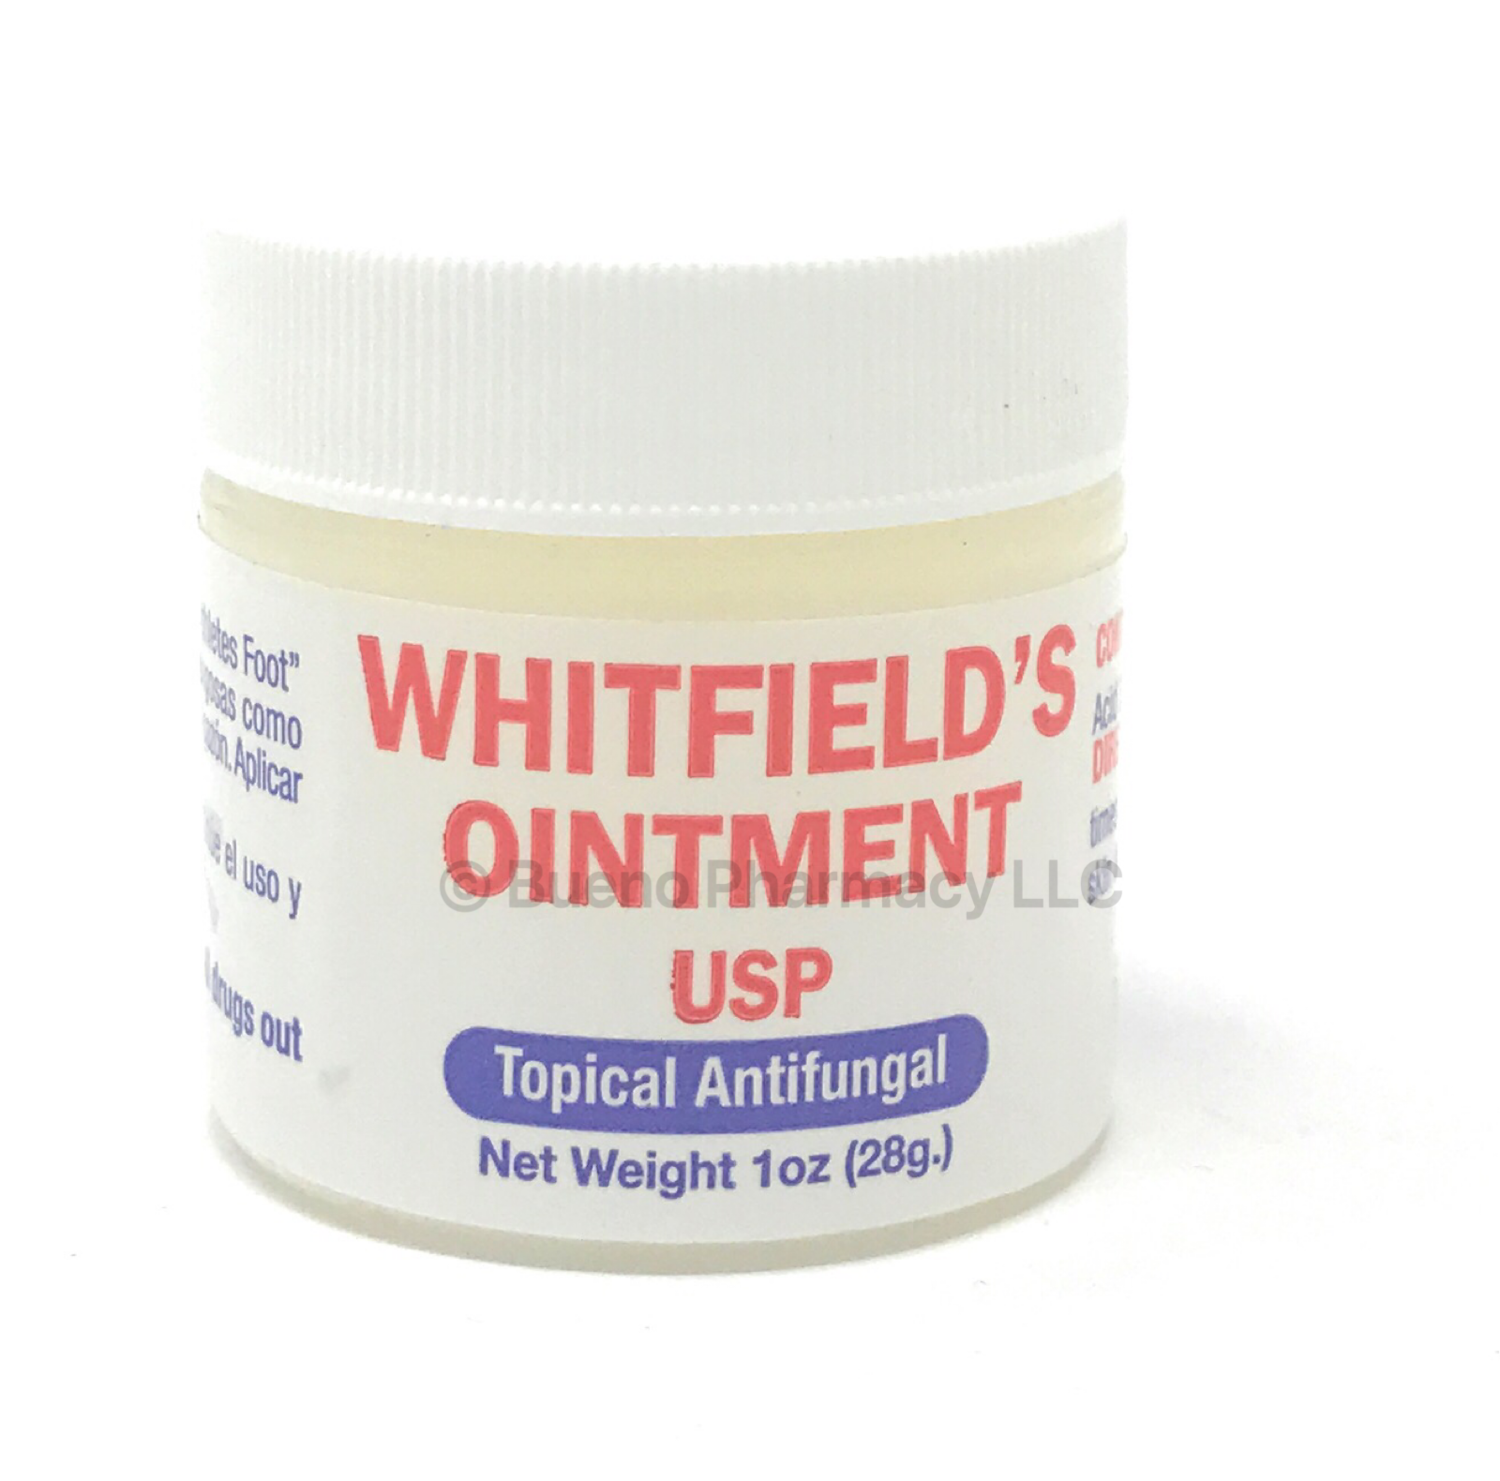 Whitfield's Ointments Usp Topical Antifungal